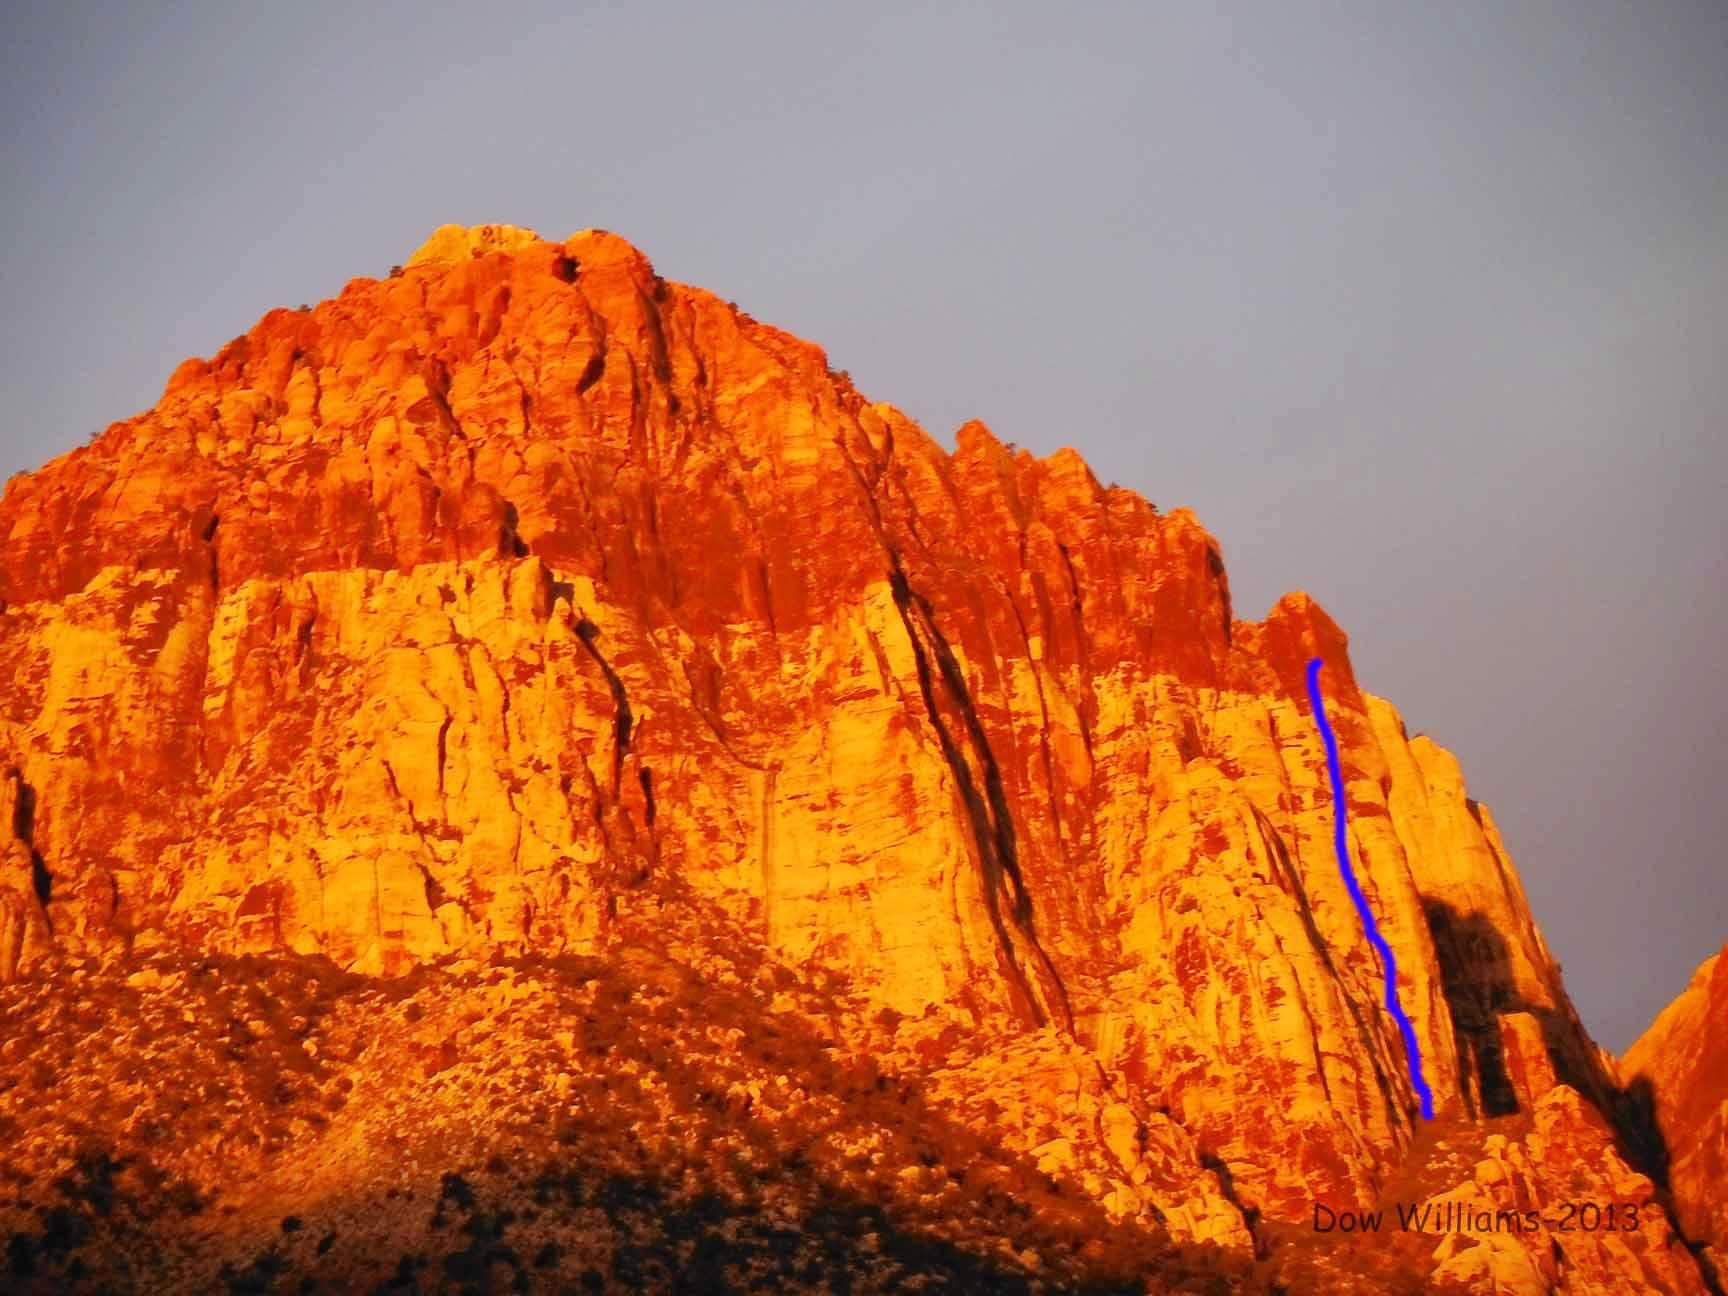 Clod Tower, 5.10c, 5 Pitches